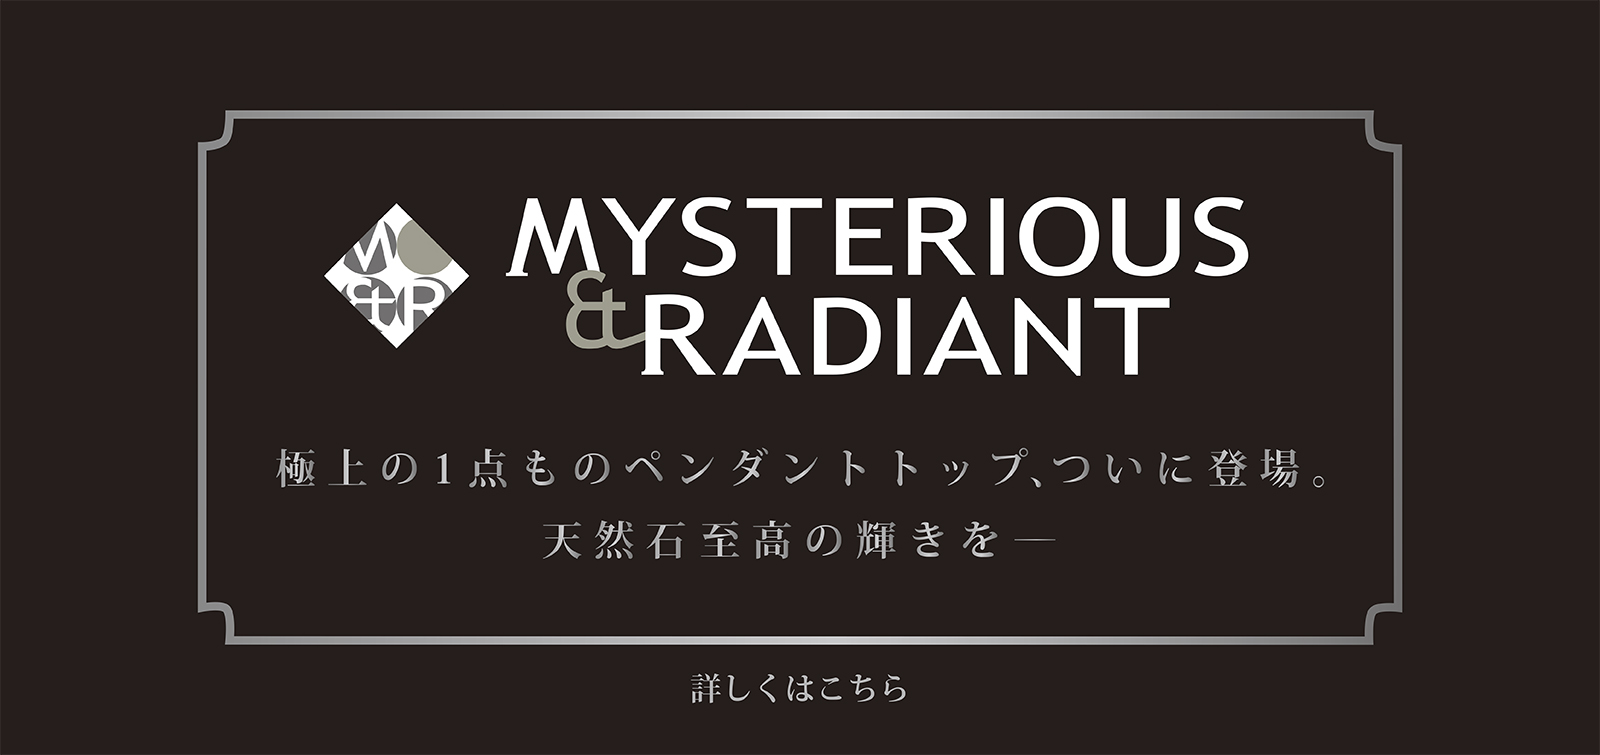 M&R Mysterious & Radiant